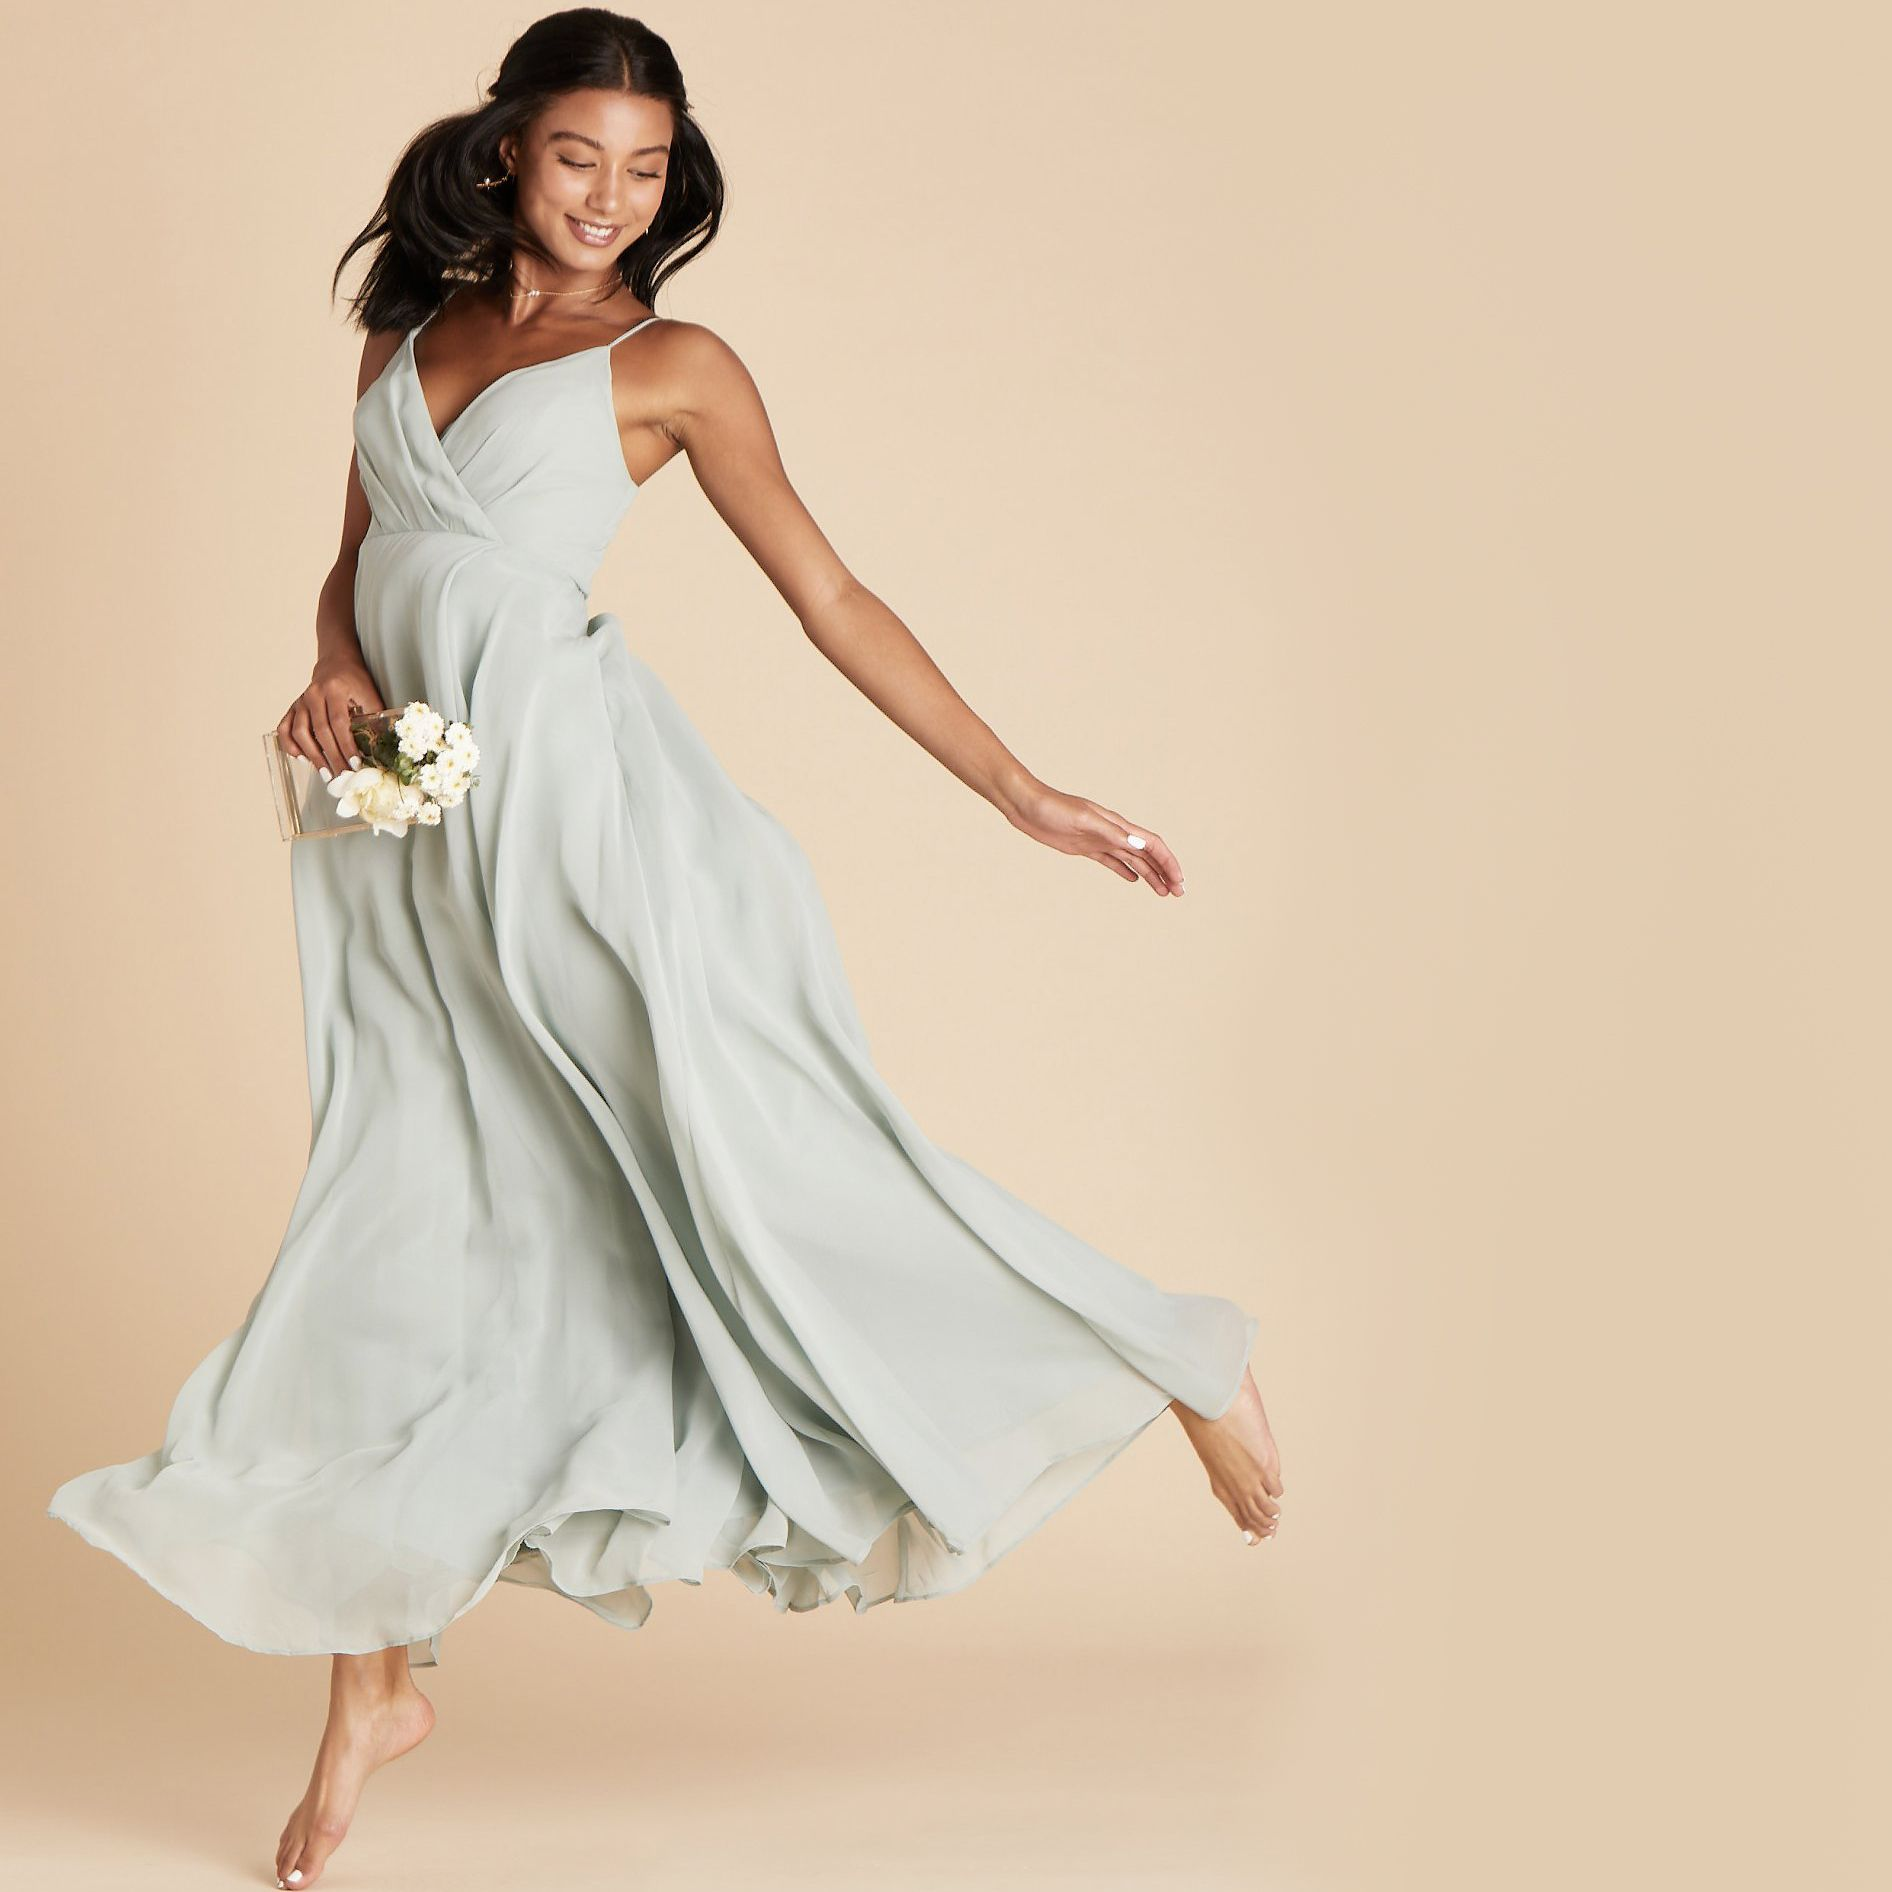 The 23 Best Places To Buy Bridesmaid Dresses Online Of 2020